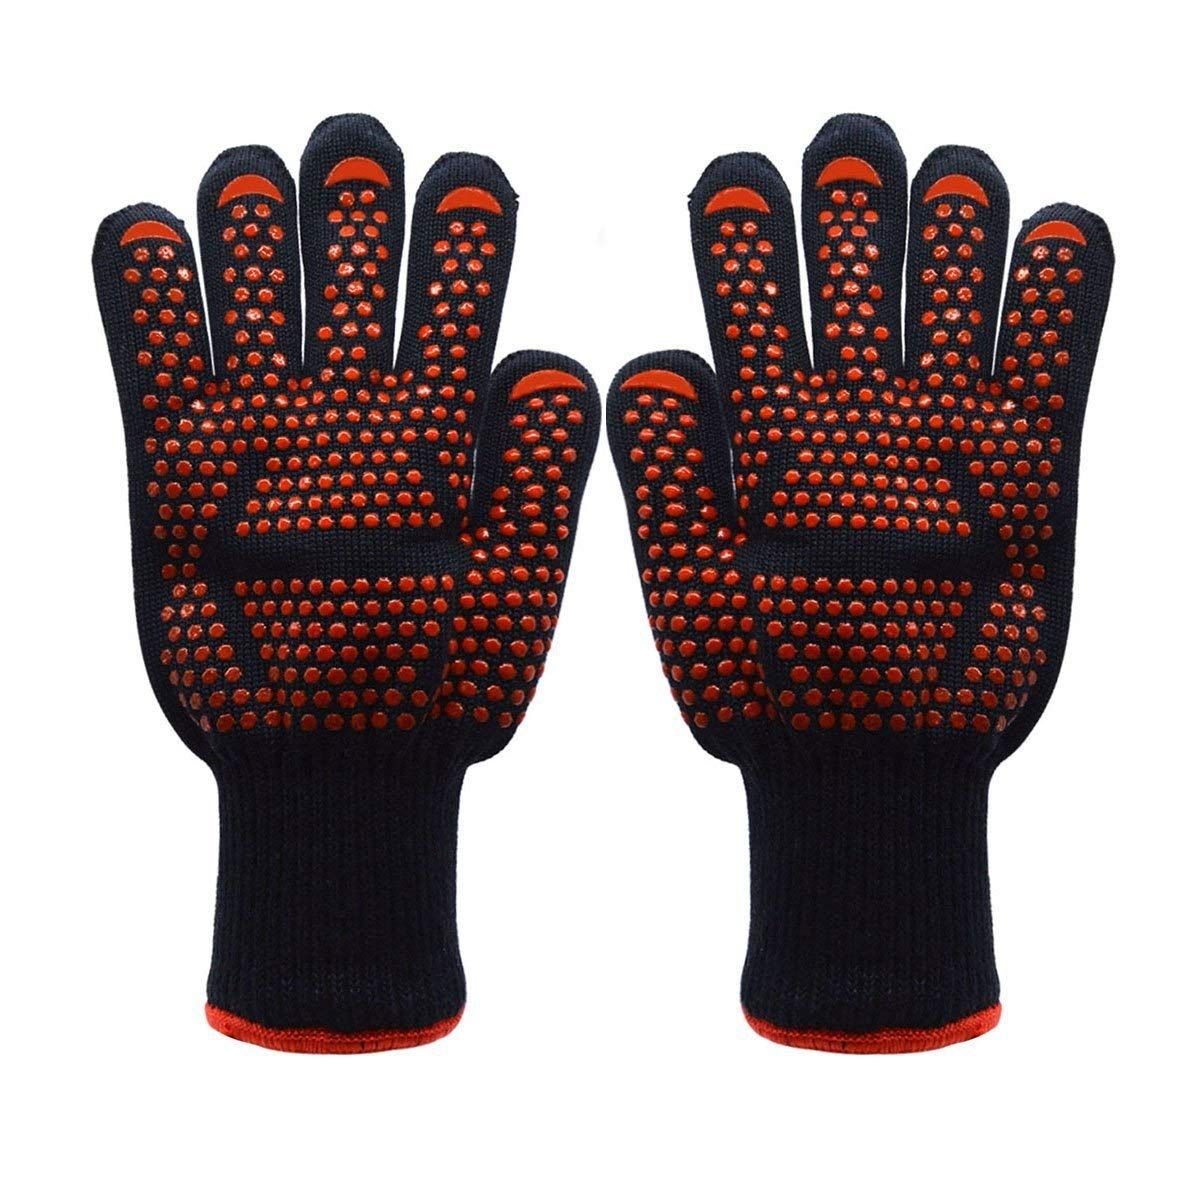 ZJYSM Comfortable, Wearable, Flexible, Lightweight, 500/800 Degree Cut Resistant, High Temperature Resistant Gloves, Anti-fire, Non-discoloring BBQ Barbecue Gloves Gloves